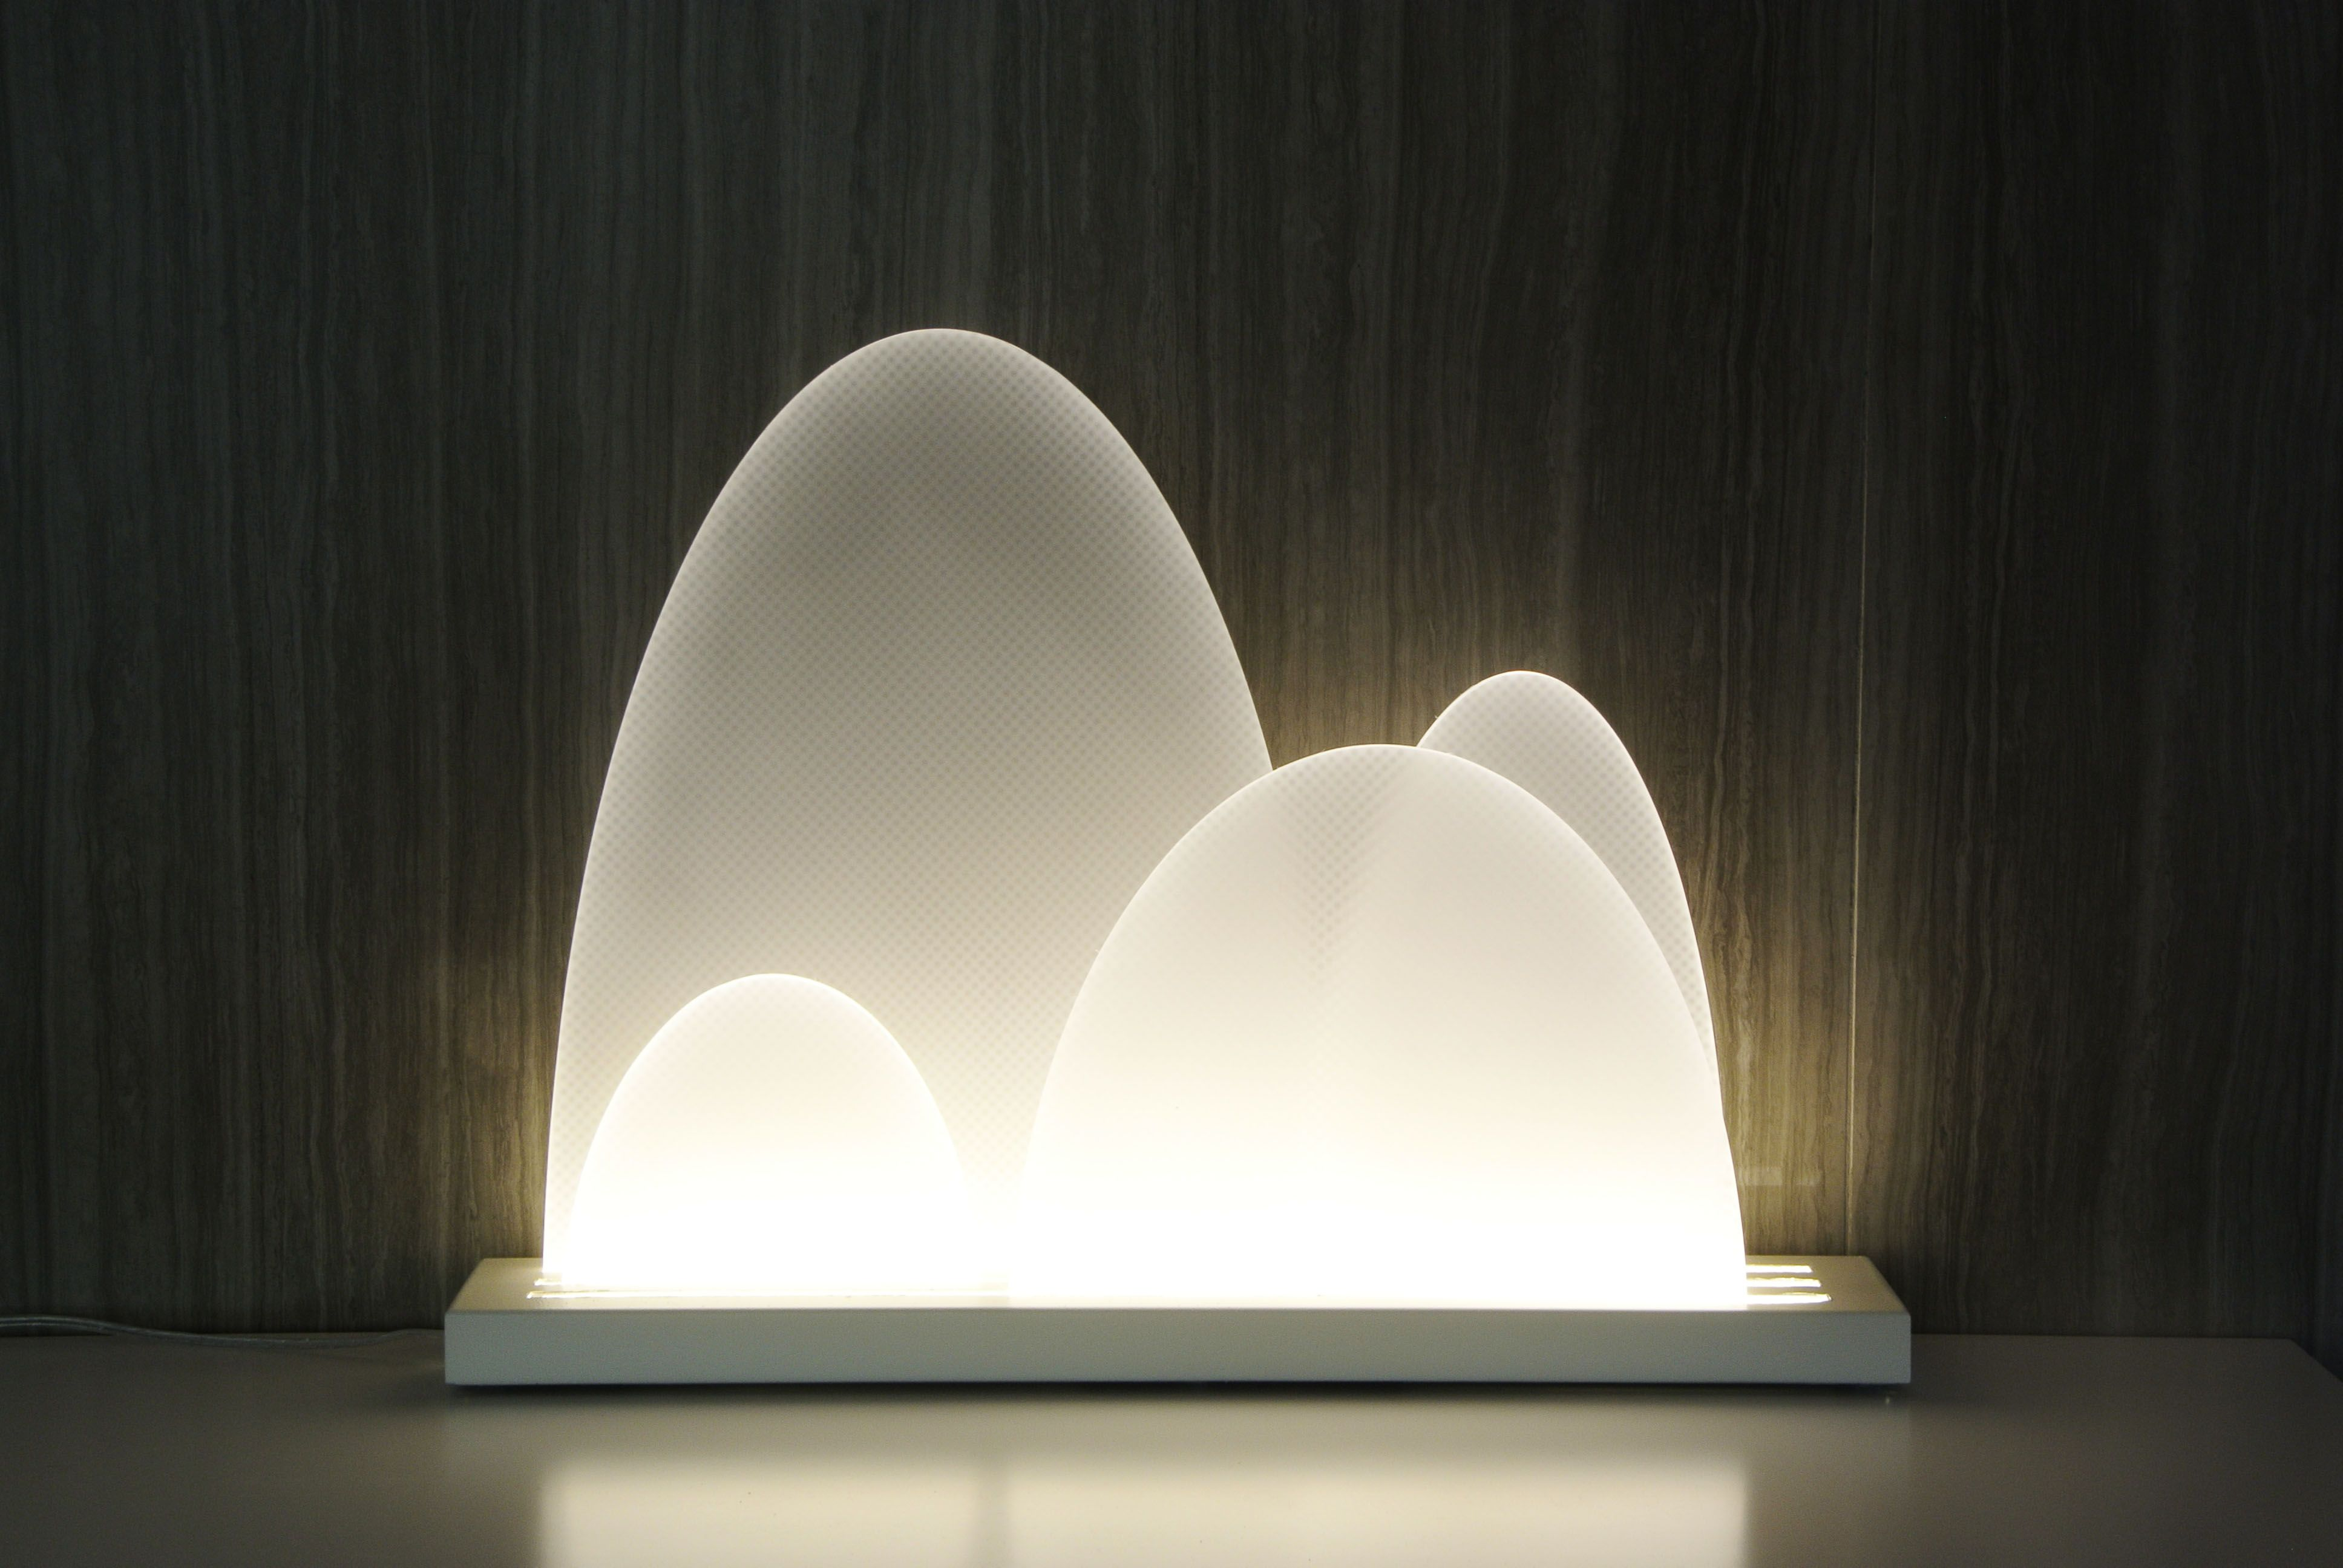 Pin by COC KY on GUILIN-The planet first environment cleansing lamp | Environmental design. Contemporary design. Wall lights